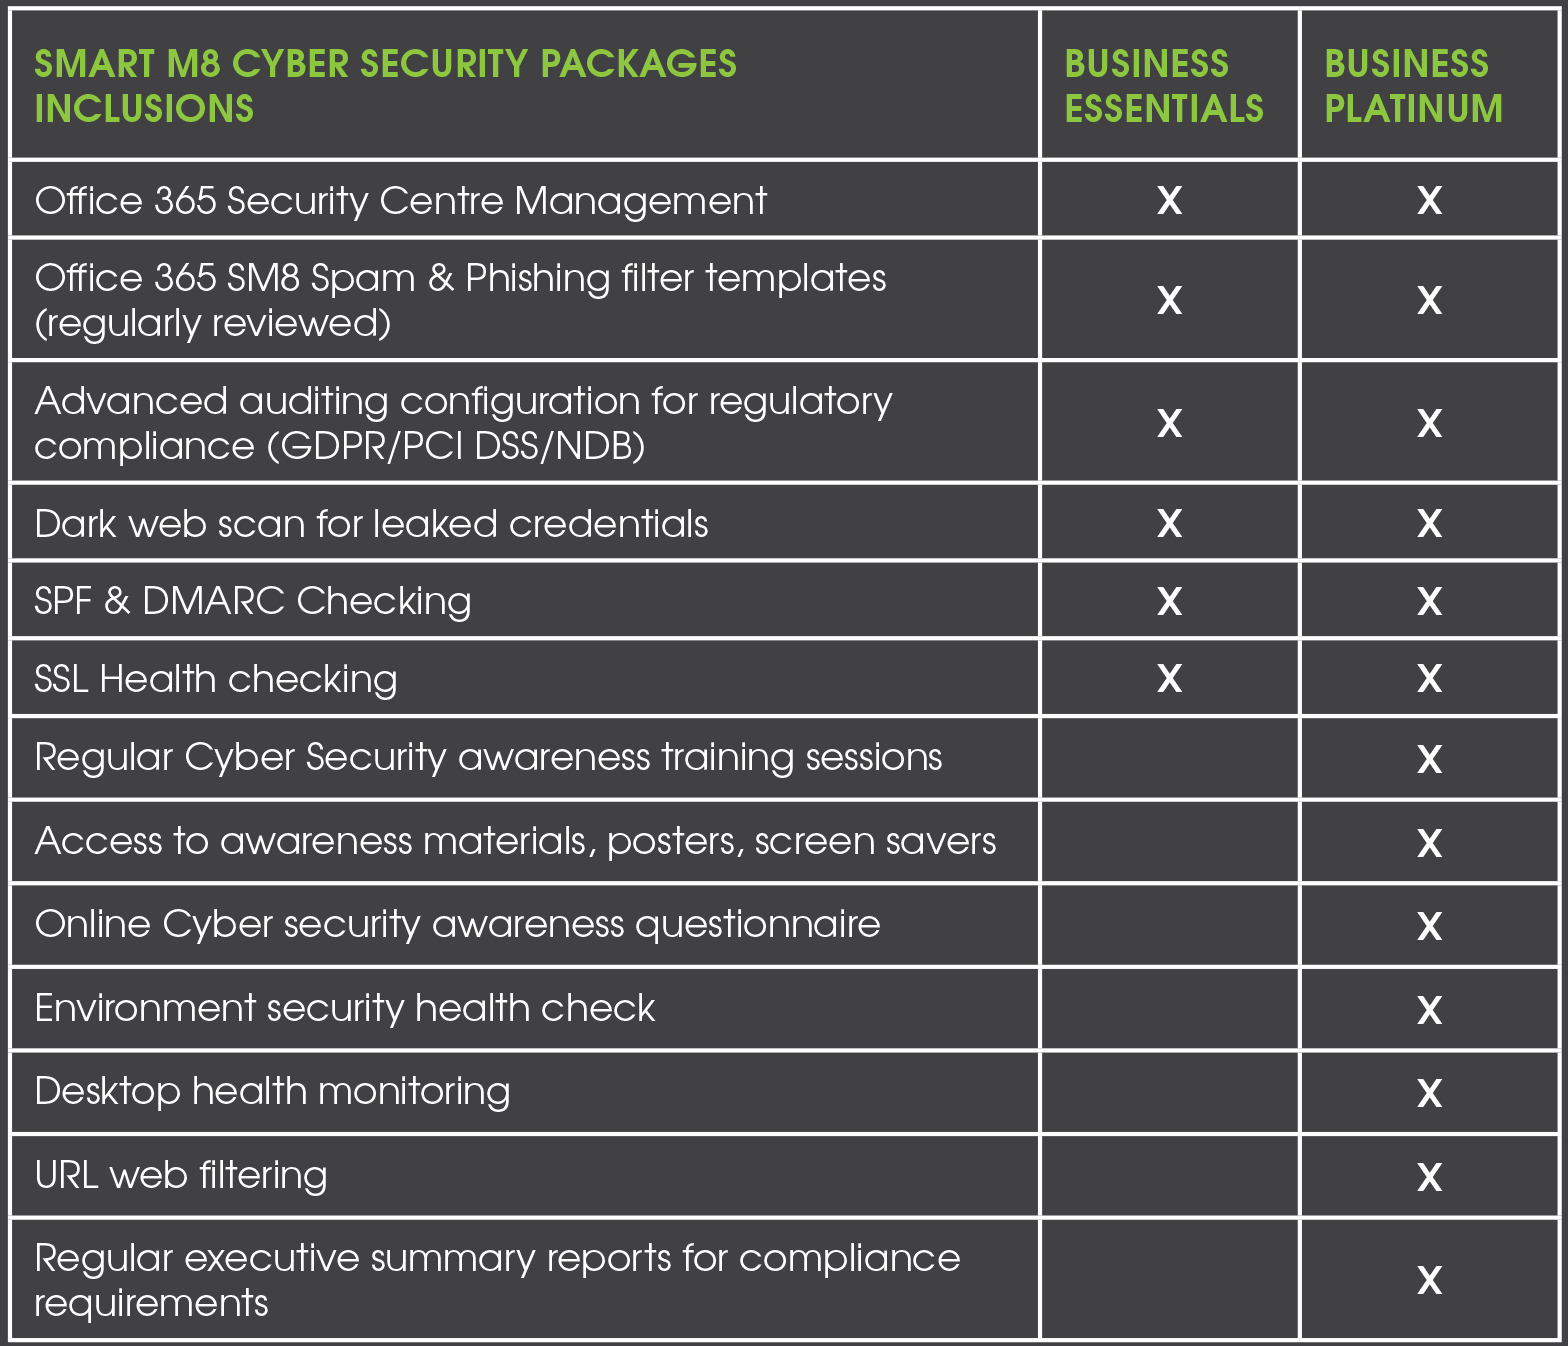 Smartm8-Cyber-Security-Packages.png